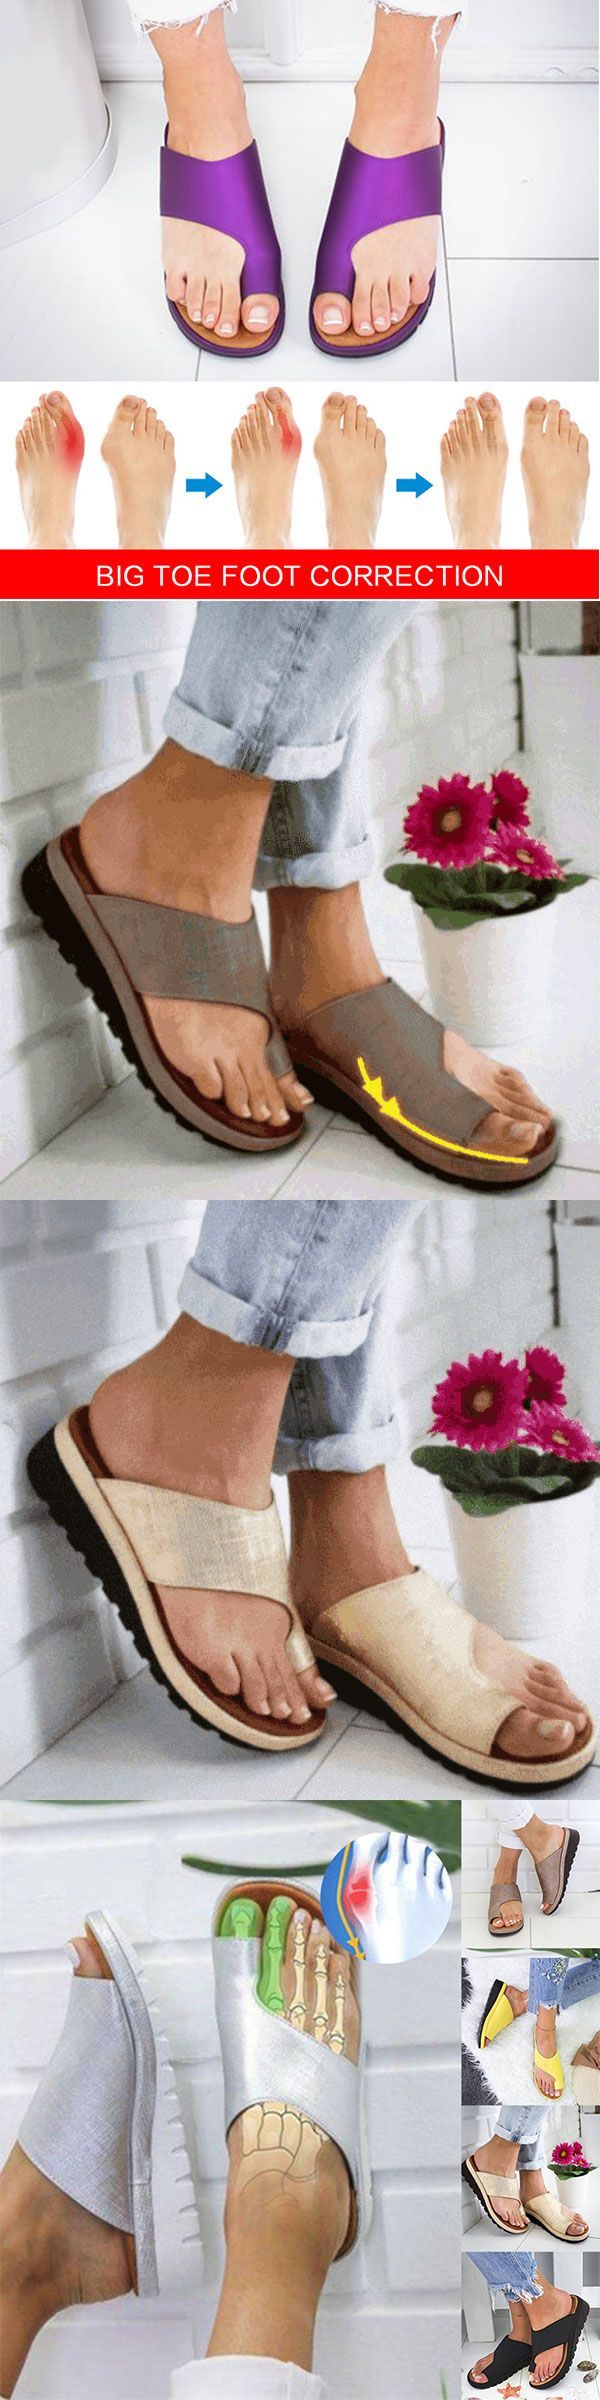 Still worry about toe foot correction?A Perfect shoes solve all your problem~Only $26.99 & Free shipping,Muti-color  for choice,Pick your own shoes now~ #thingstowear